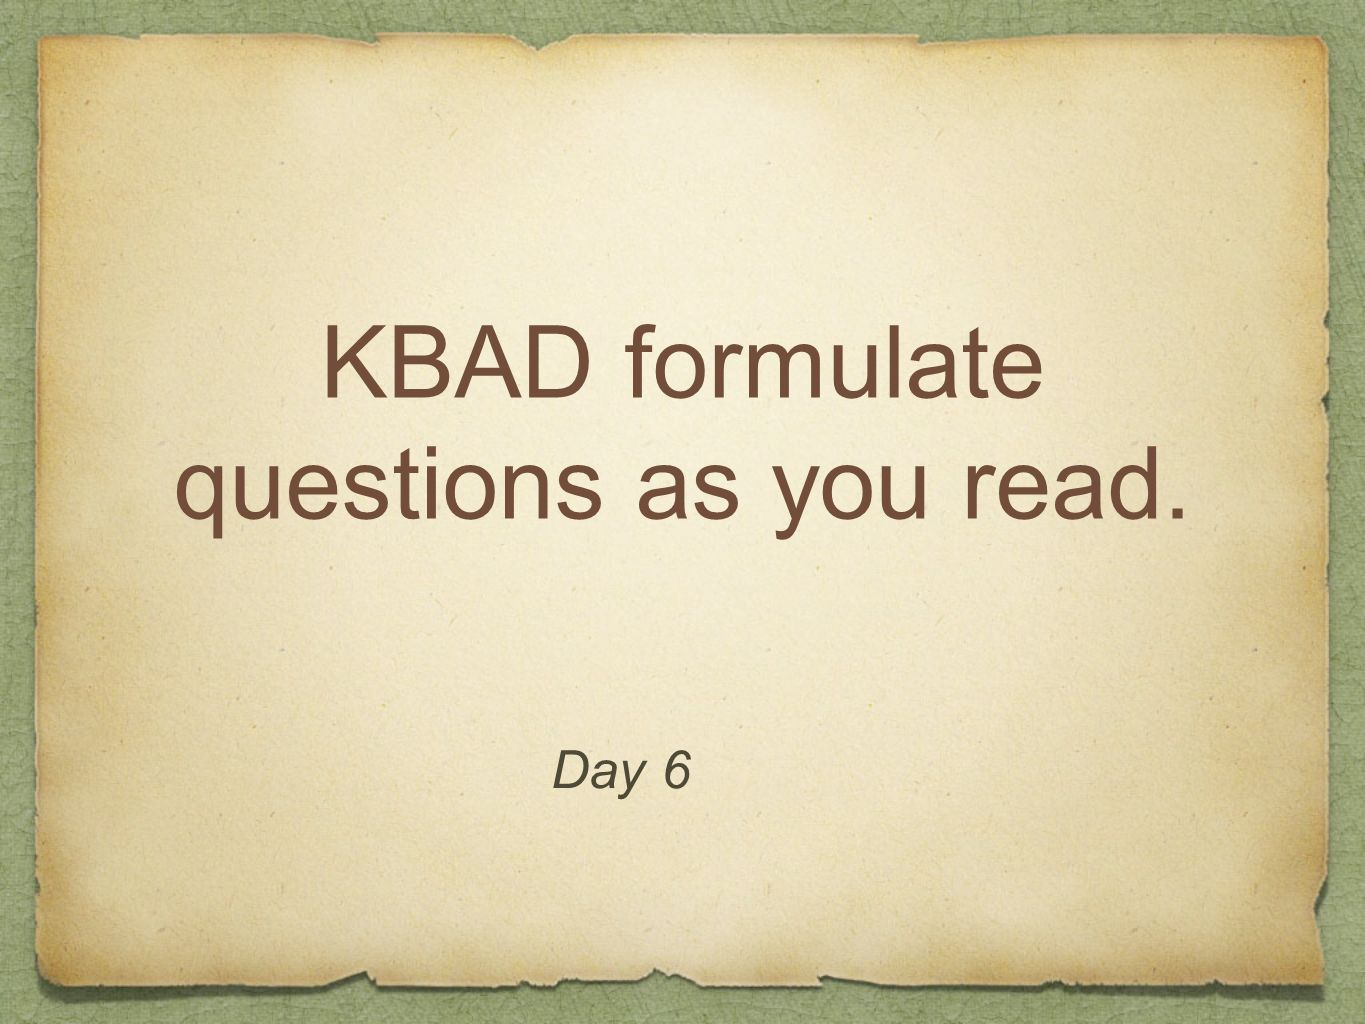 KBAD formulate questions as you read. Day 6